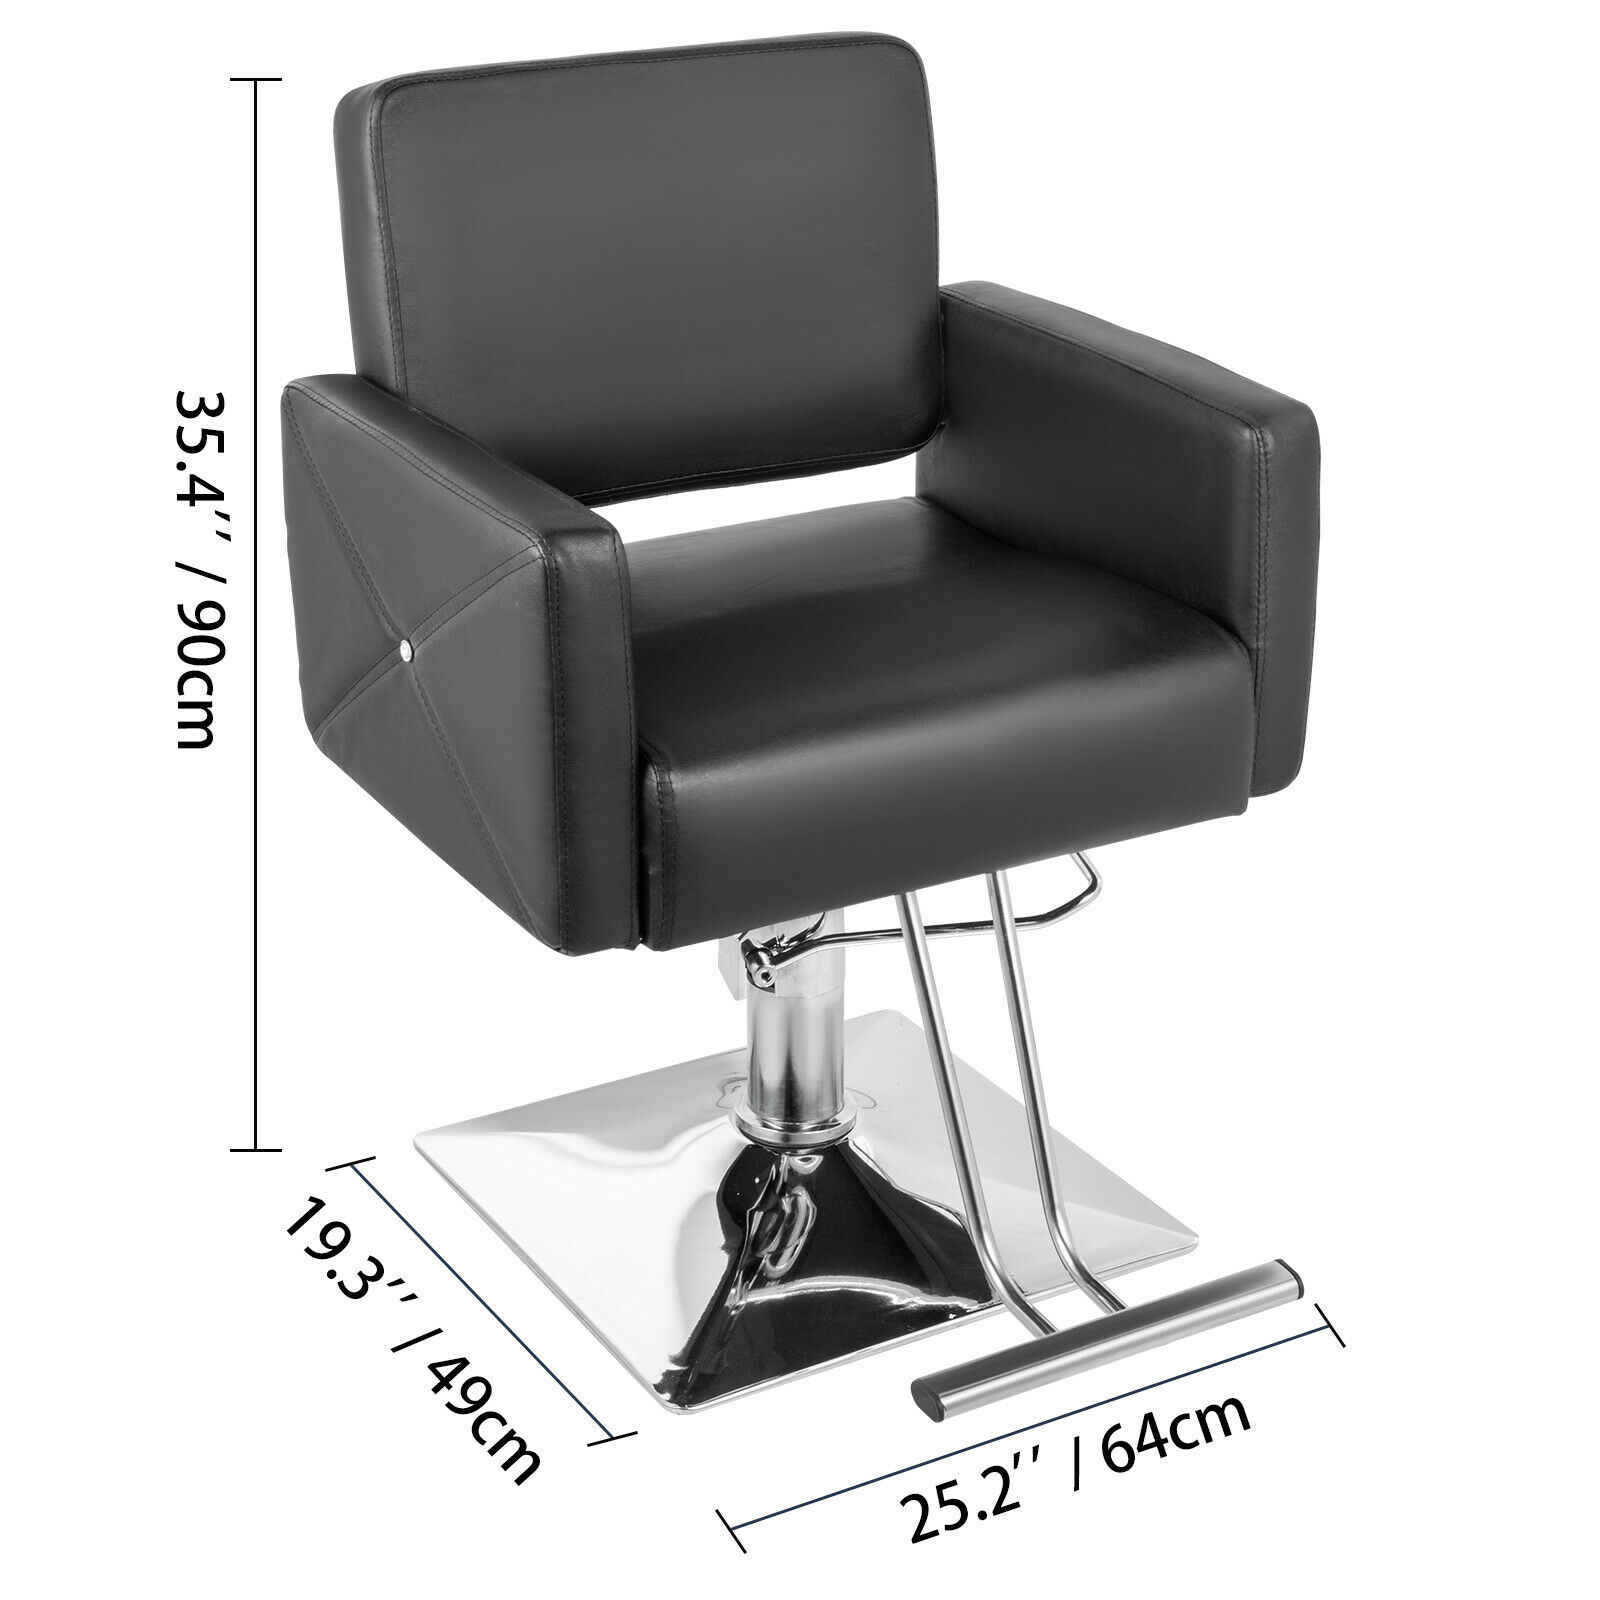 Hydraulic Barber Chair Pu Leather Styling Chairs For Salon Modern Hairdresser Tattoo Shaving Lift Square Barber Chair Barber Chairs Aliexpress